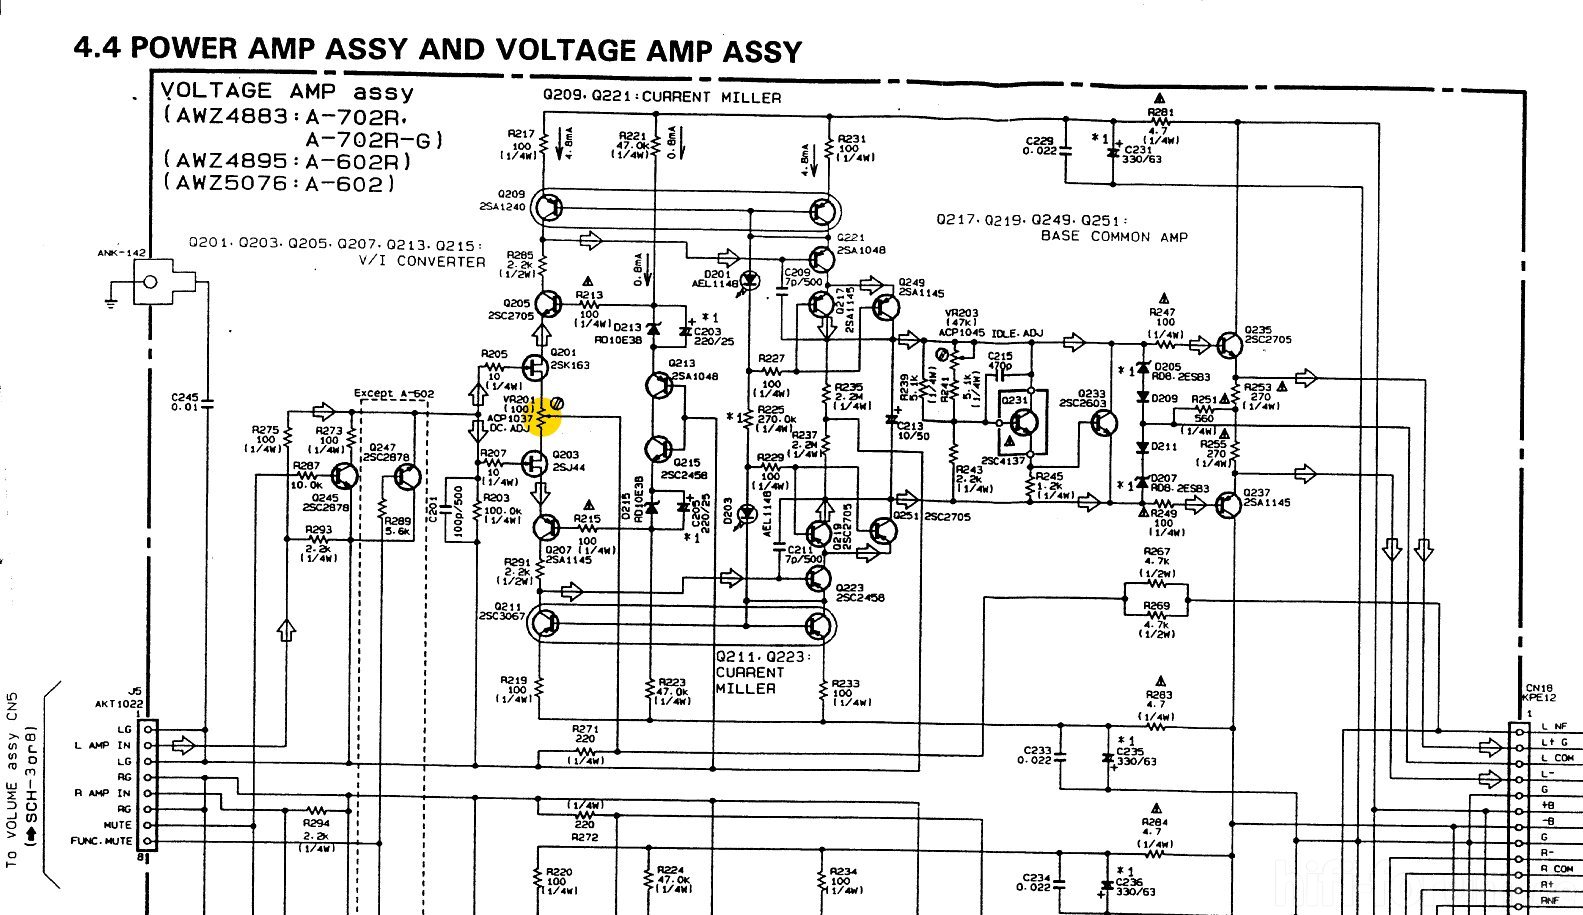 Pioneer A 702r Schematic Detail Power Amp Voltage